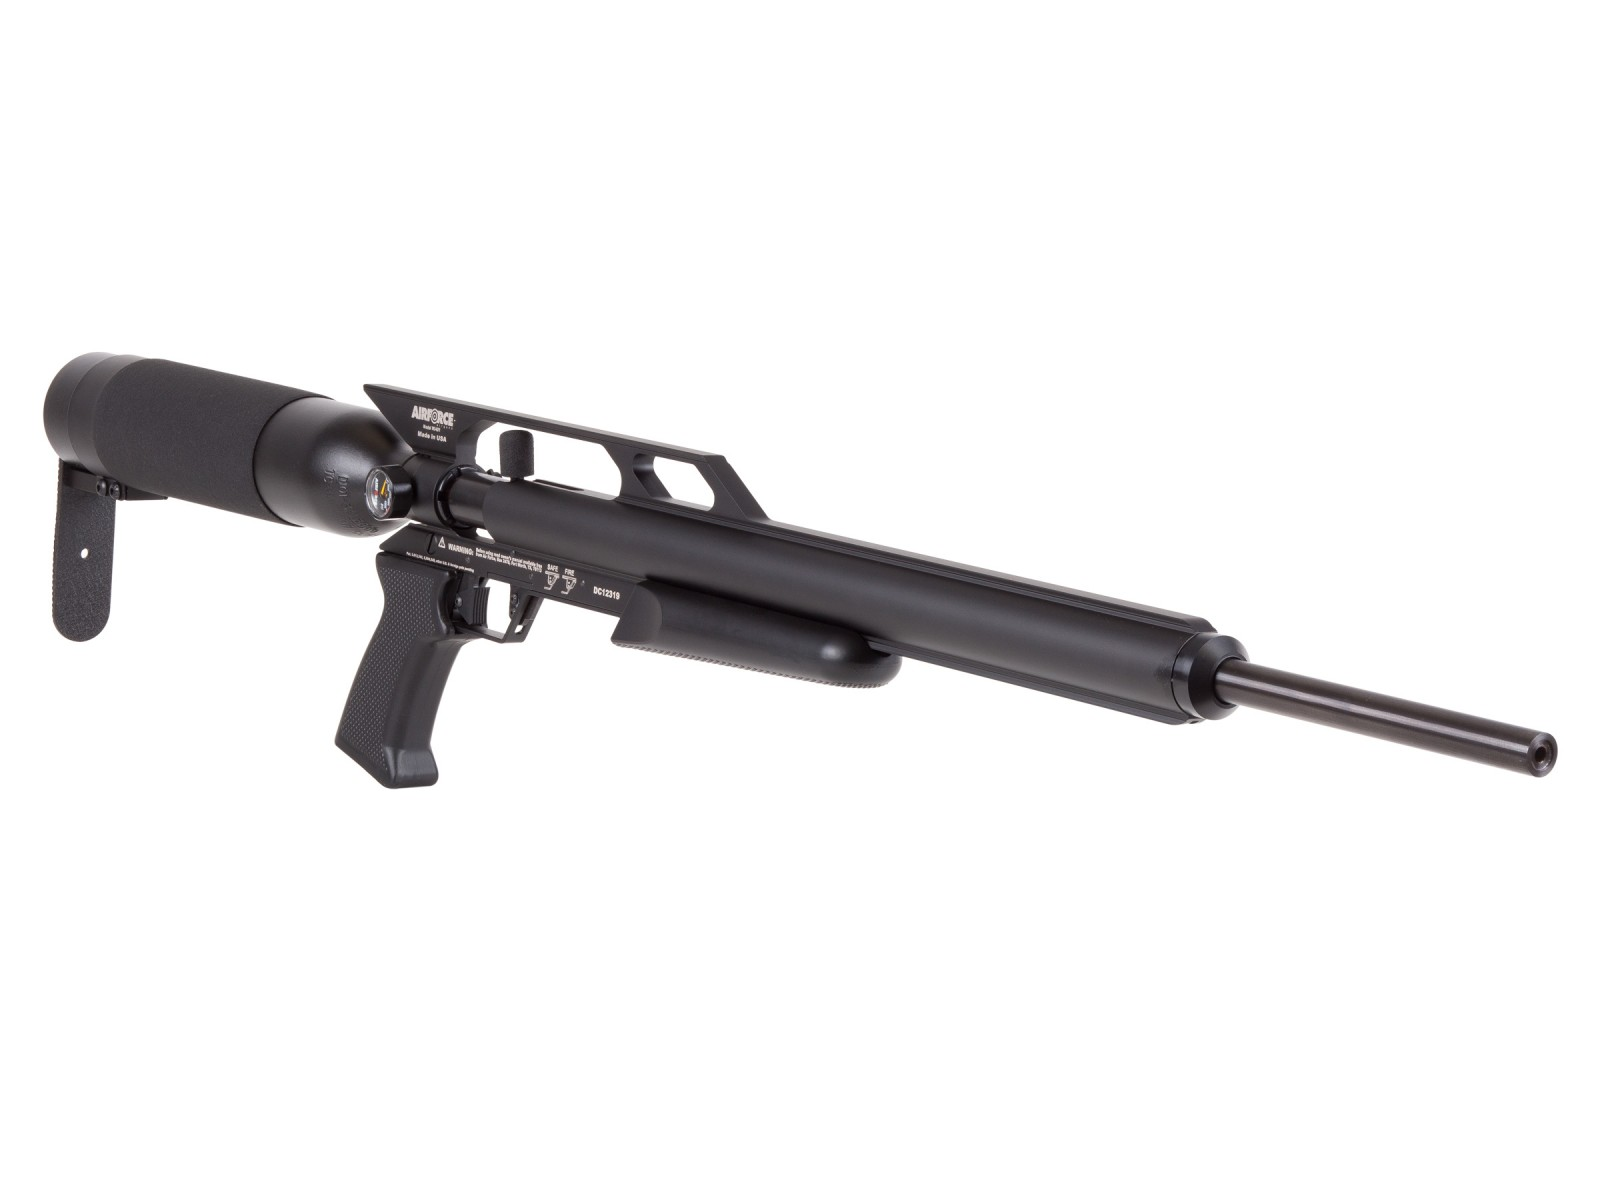 AirForce Condor PCP Air Rifle, Spin-Loc Tank 0.22 Image